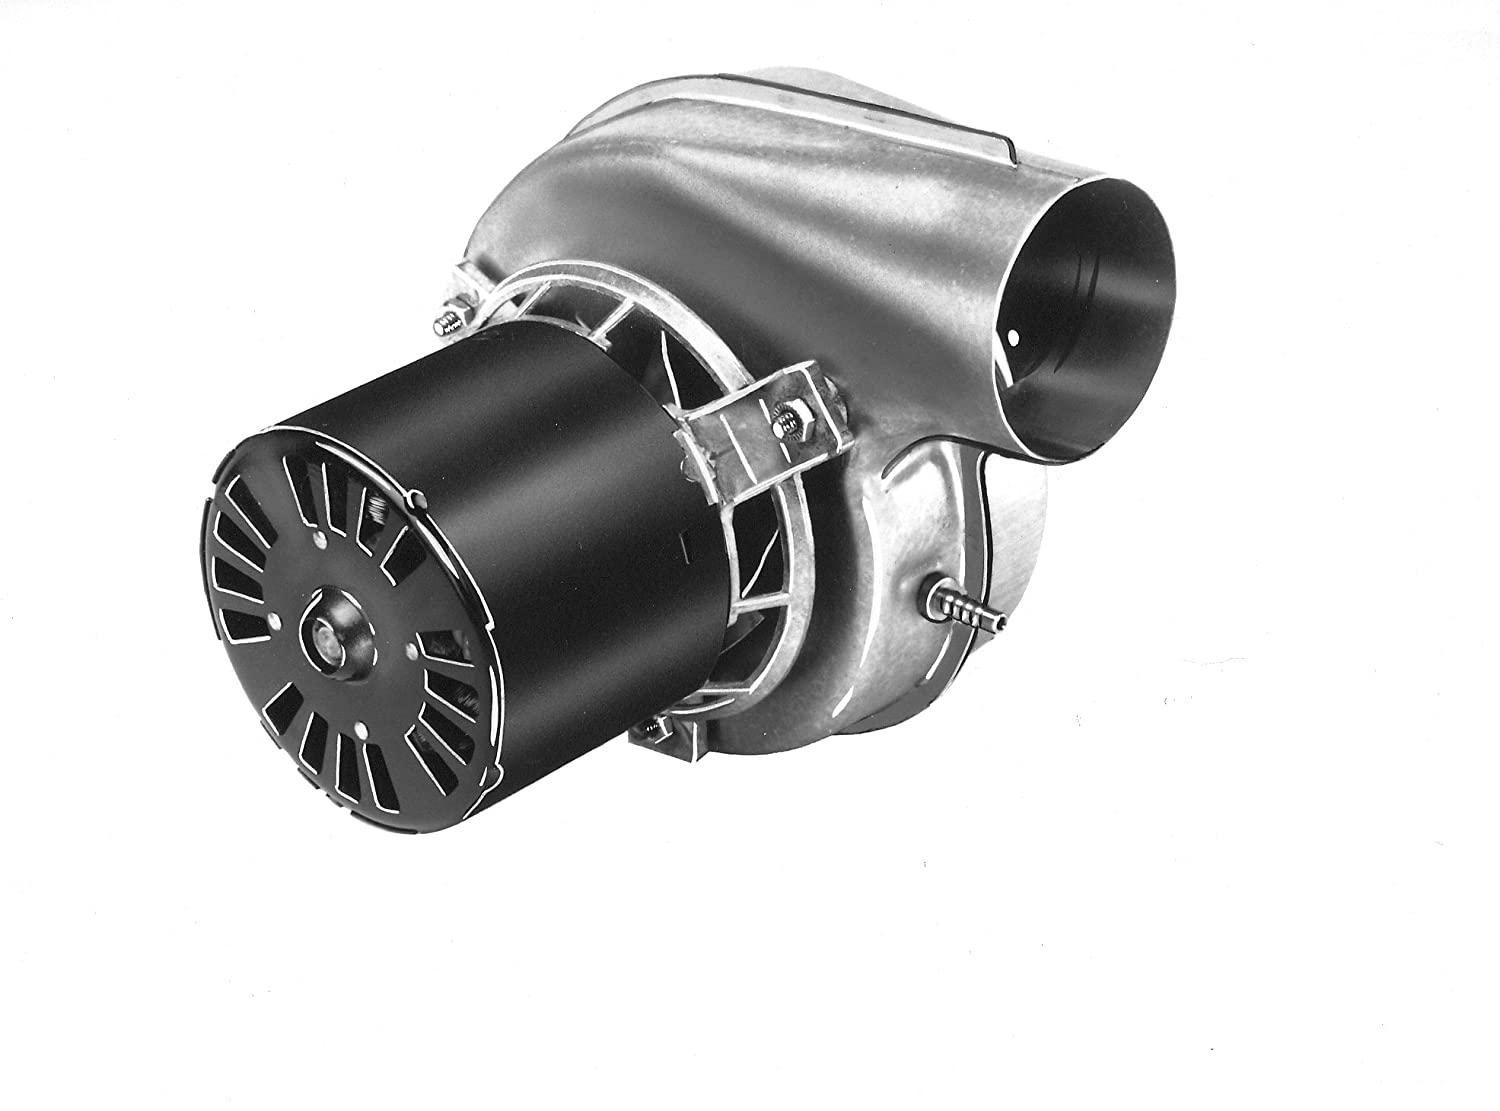 Fasco A135 3.3 Frame Shaded Pole OEM Replacement Specific Purpose Blower with Sleeve Bearing, 1/60HP, 3,000 rpm, 120V, 60 Hz, 0.7 amps by Fasco B0099ATU4O